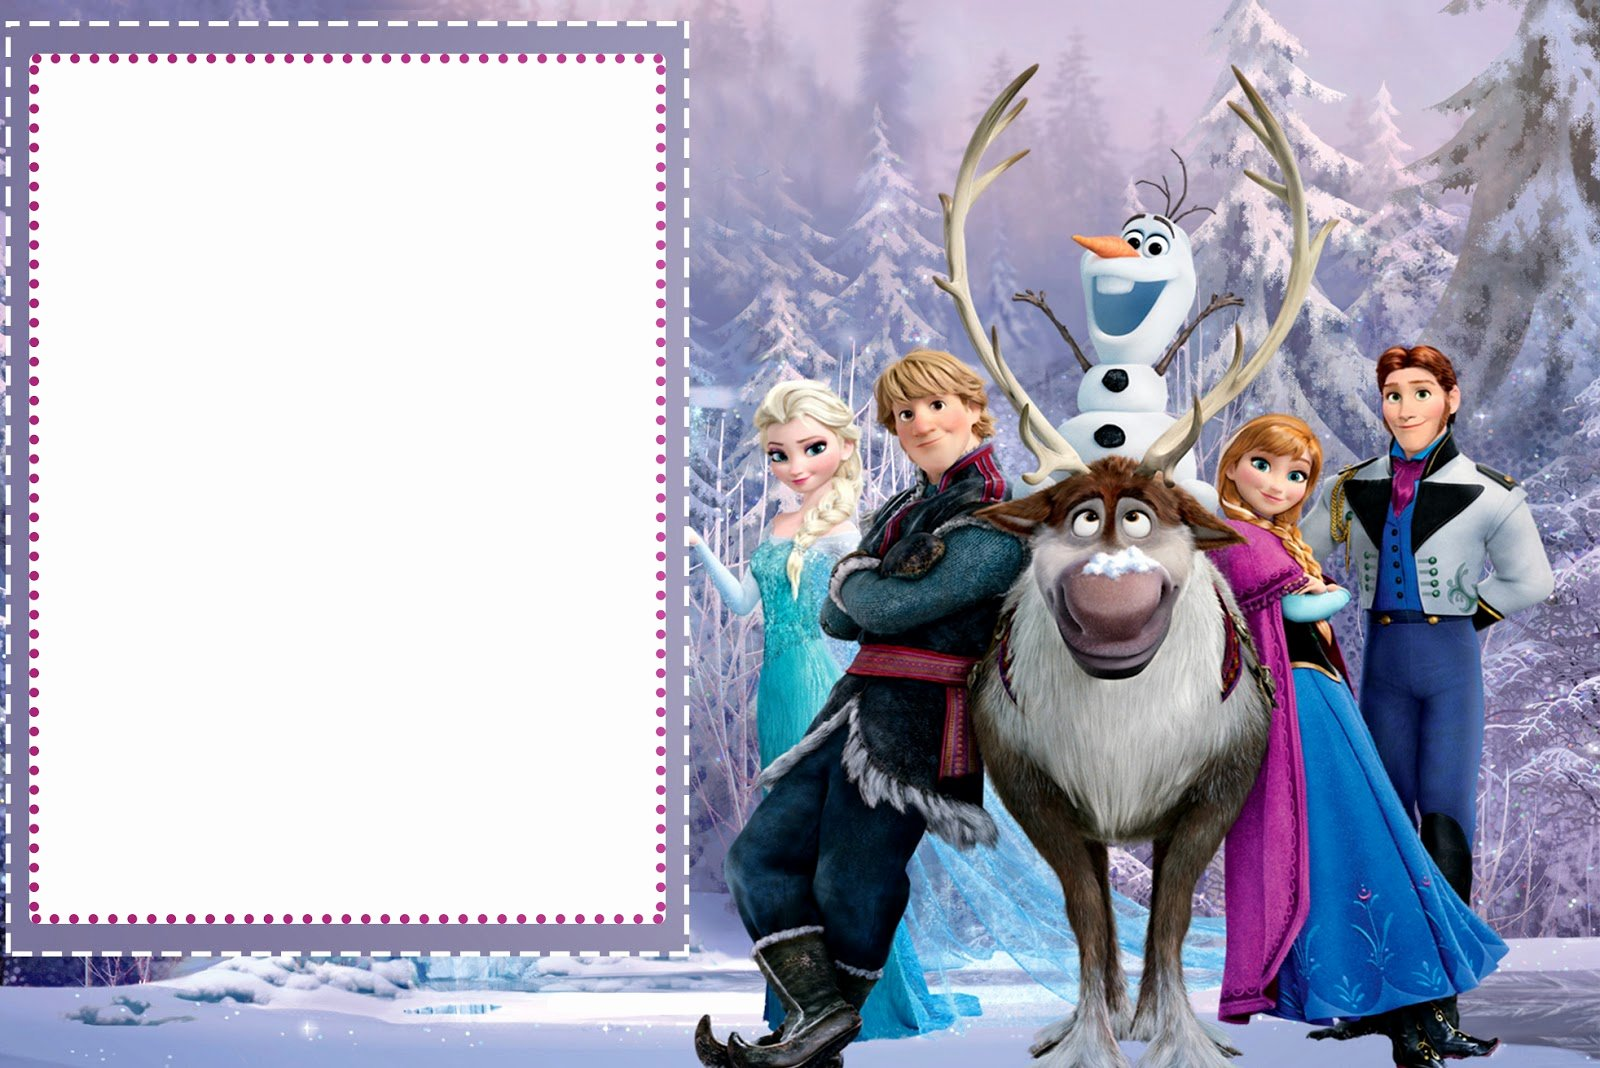 Frozen Birthday Invitations Free Luxury Frozen Free Printable Cards or Party Invitations Oh My